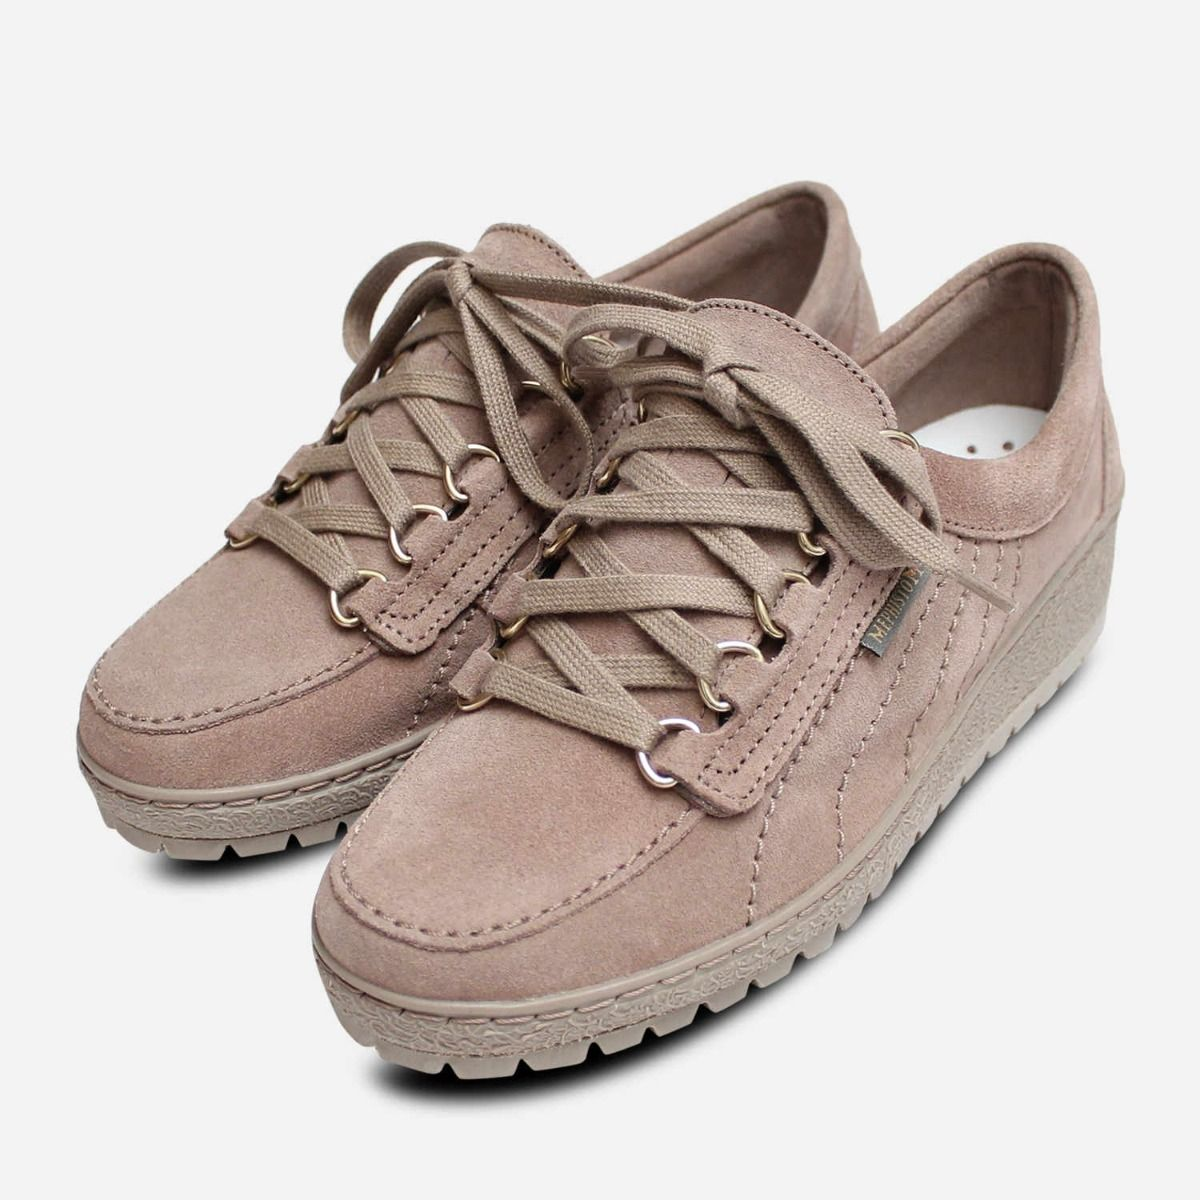 c690a9367662a Mephisto Womens Lady Lace Up Shoes in Light Taupe